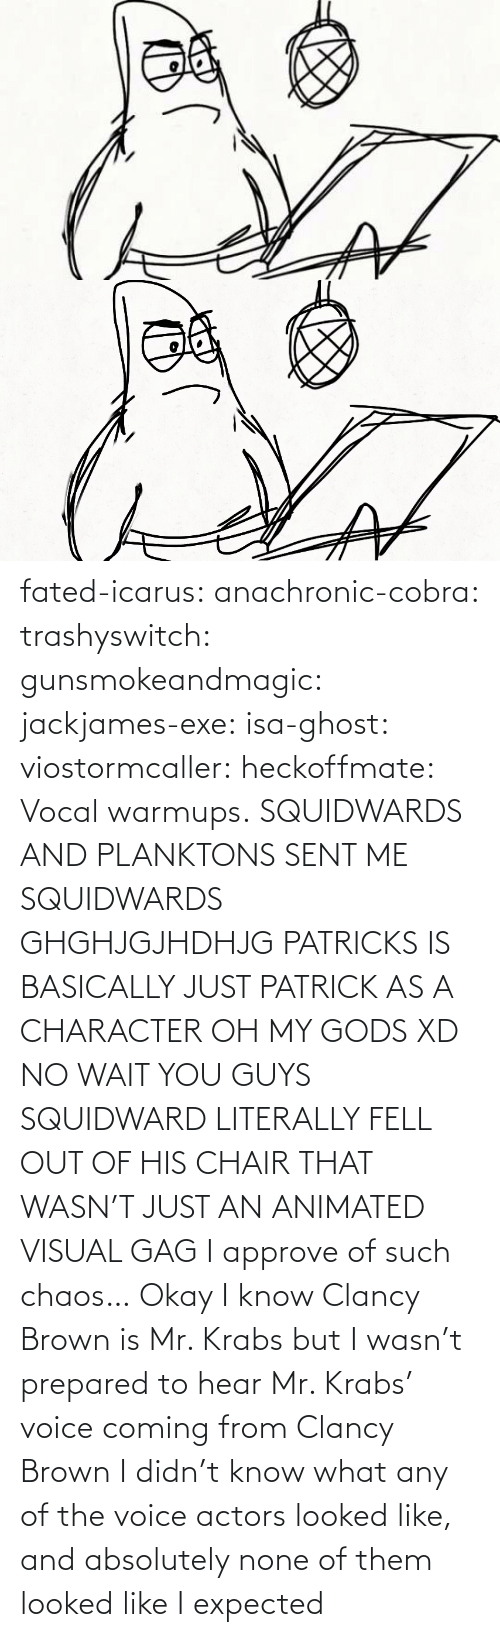 From: fated-icarus:  anachronic-cobra: trashyswitch:  gunsmokeandmagic:  jackjames-exe:  isa-ghost:   viostormcaller:  heckoffmate: Vocal warmups. SQUIDWARDS AND PLANKTONS SENT ME  SQUIDWARDS GHGHJGJHDHJG   PATRICKS IS BASICALLY JUST PATRICK AS A CHARACTER OH MY GODS XD   NO WAIT YOU GUYS SQUIDWARD LITERALLY FELL OUT OF HIS CHAIR THAT WASN'T JUST AN ANIMATED VISUAL GAG    I approve of such chaos…    Okay I know Clancy Brown is Mr. Krabs but I wasn't prepared to hear Mr. Krabs' voice coming from Clancy Brown    I didn't know what any of the voice actors looked like, and absolutely none of them looked like I expected